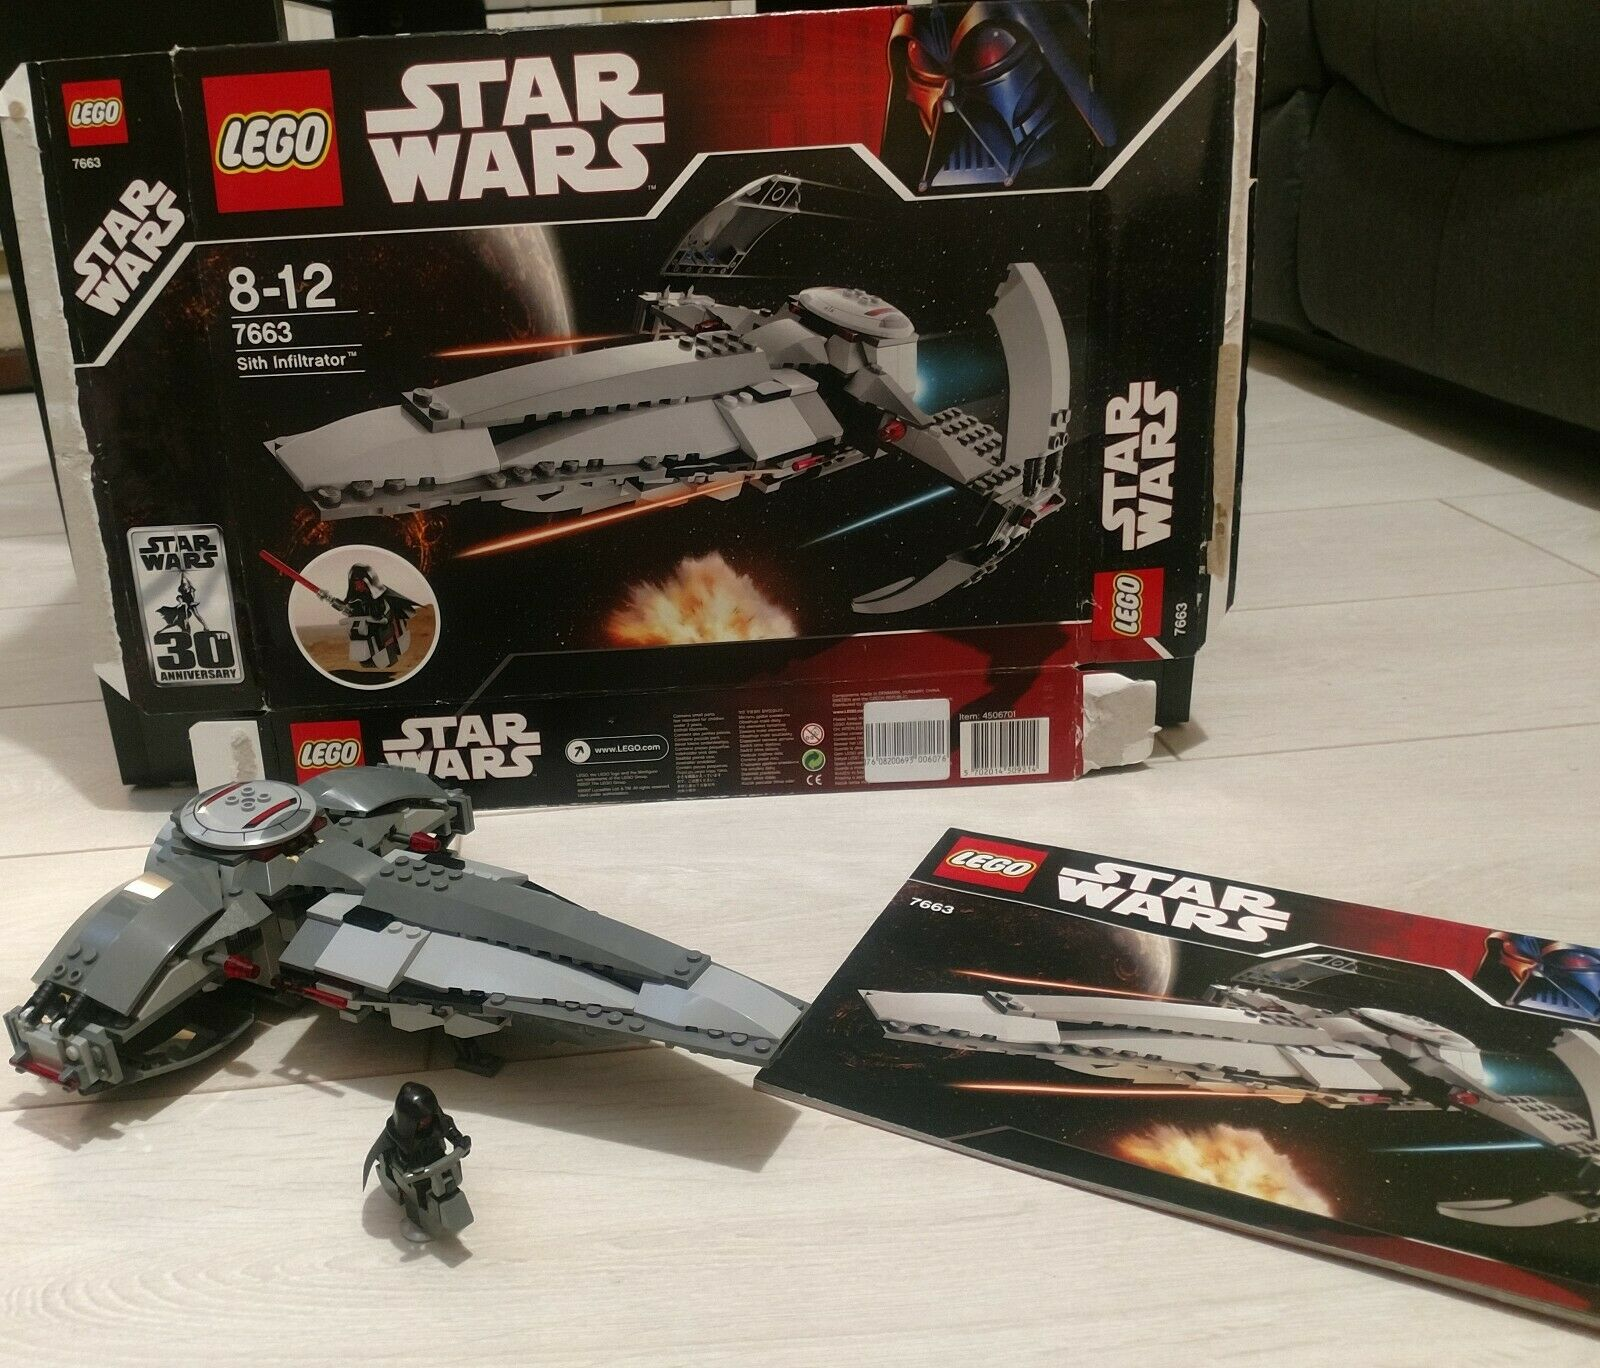 Lego Star Wars - Sith Infiltrator 7663 (2007)